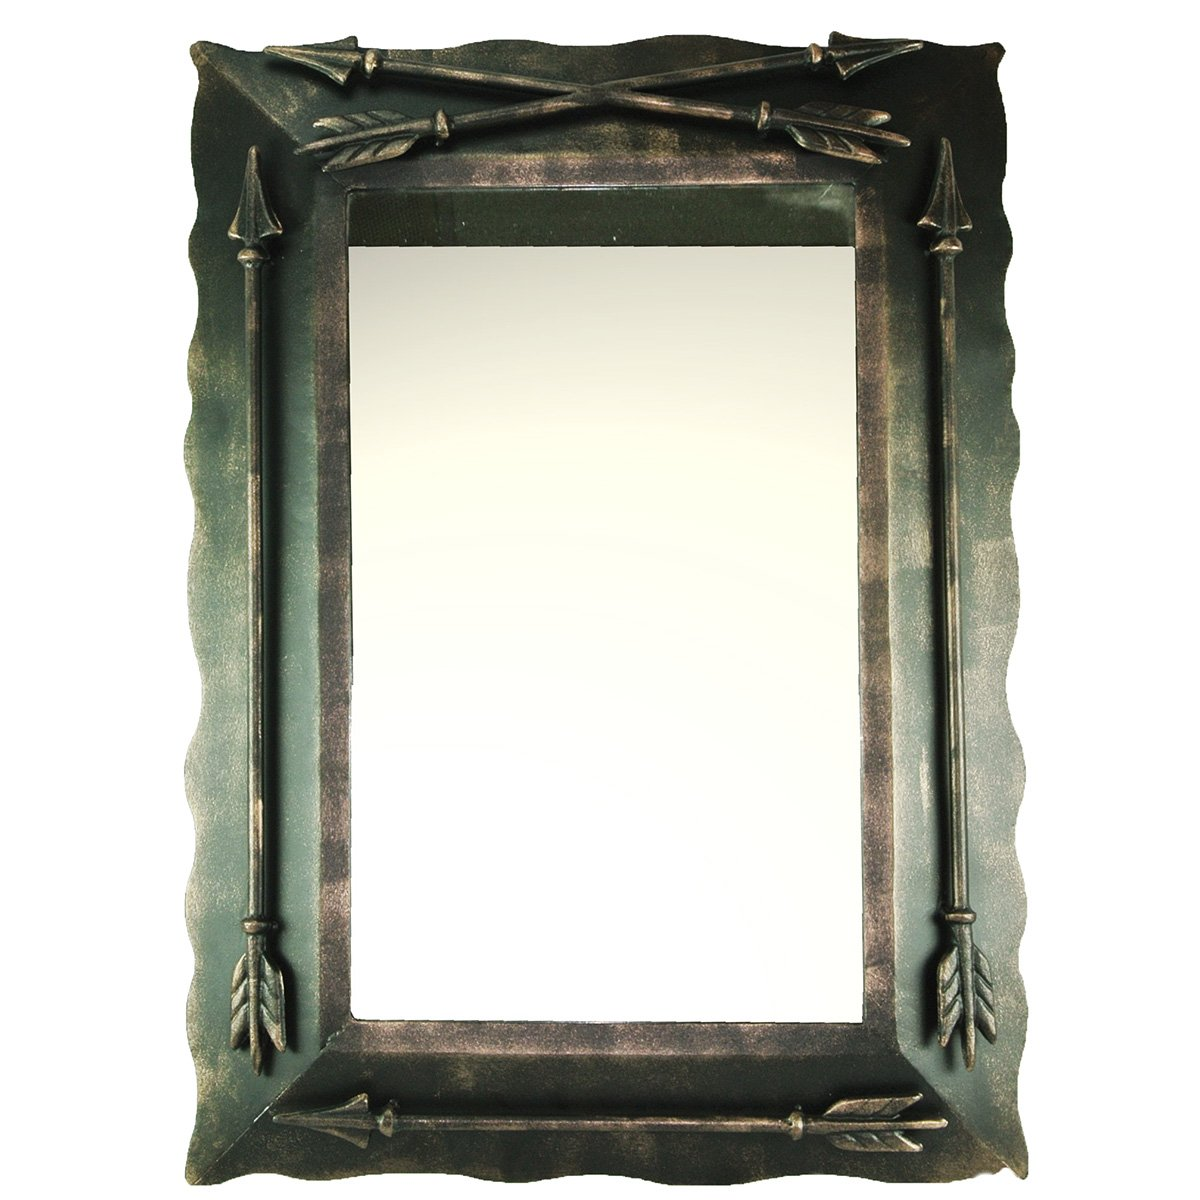 DeLeon Collections Western Metal Arrow Wall Mirror